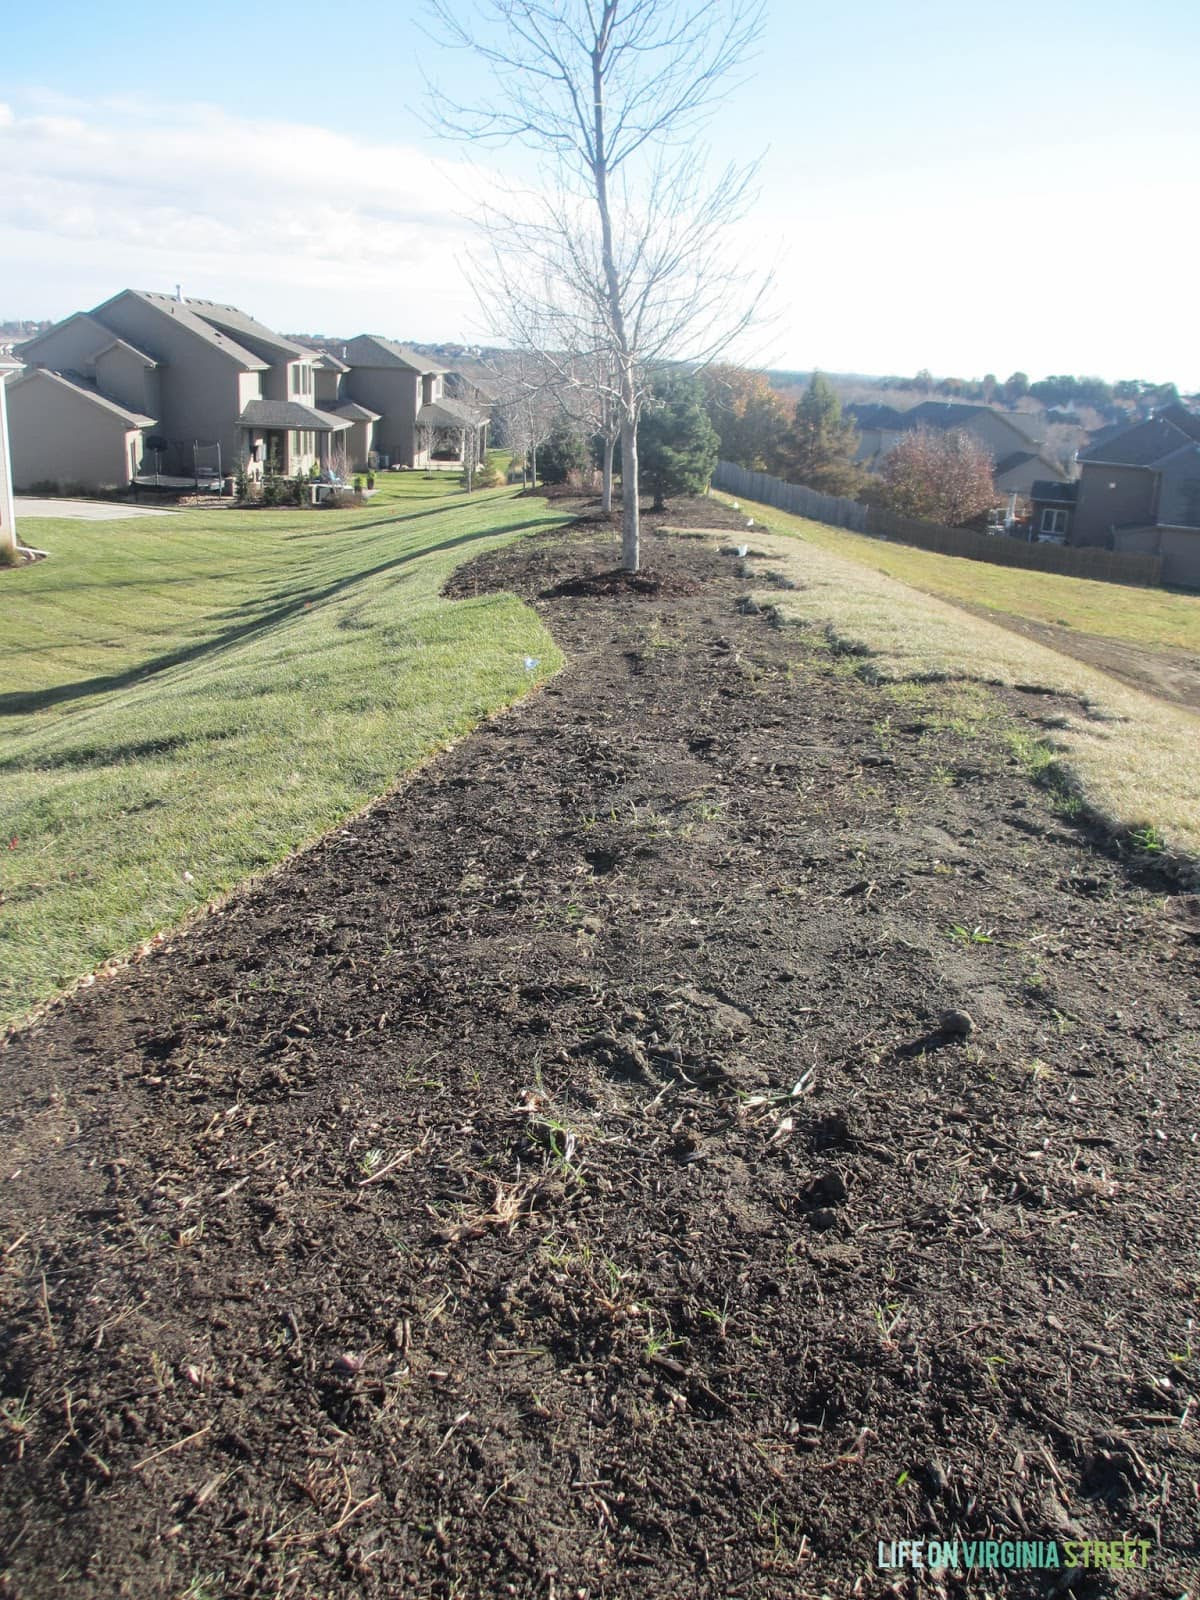 Landscaping Clean Up | Life on Virginia Street